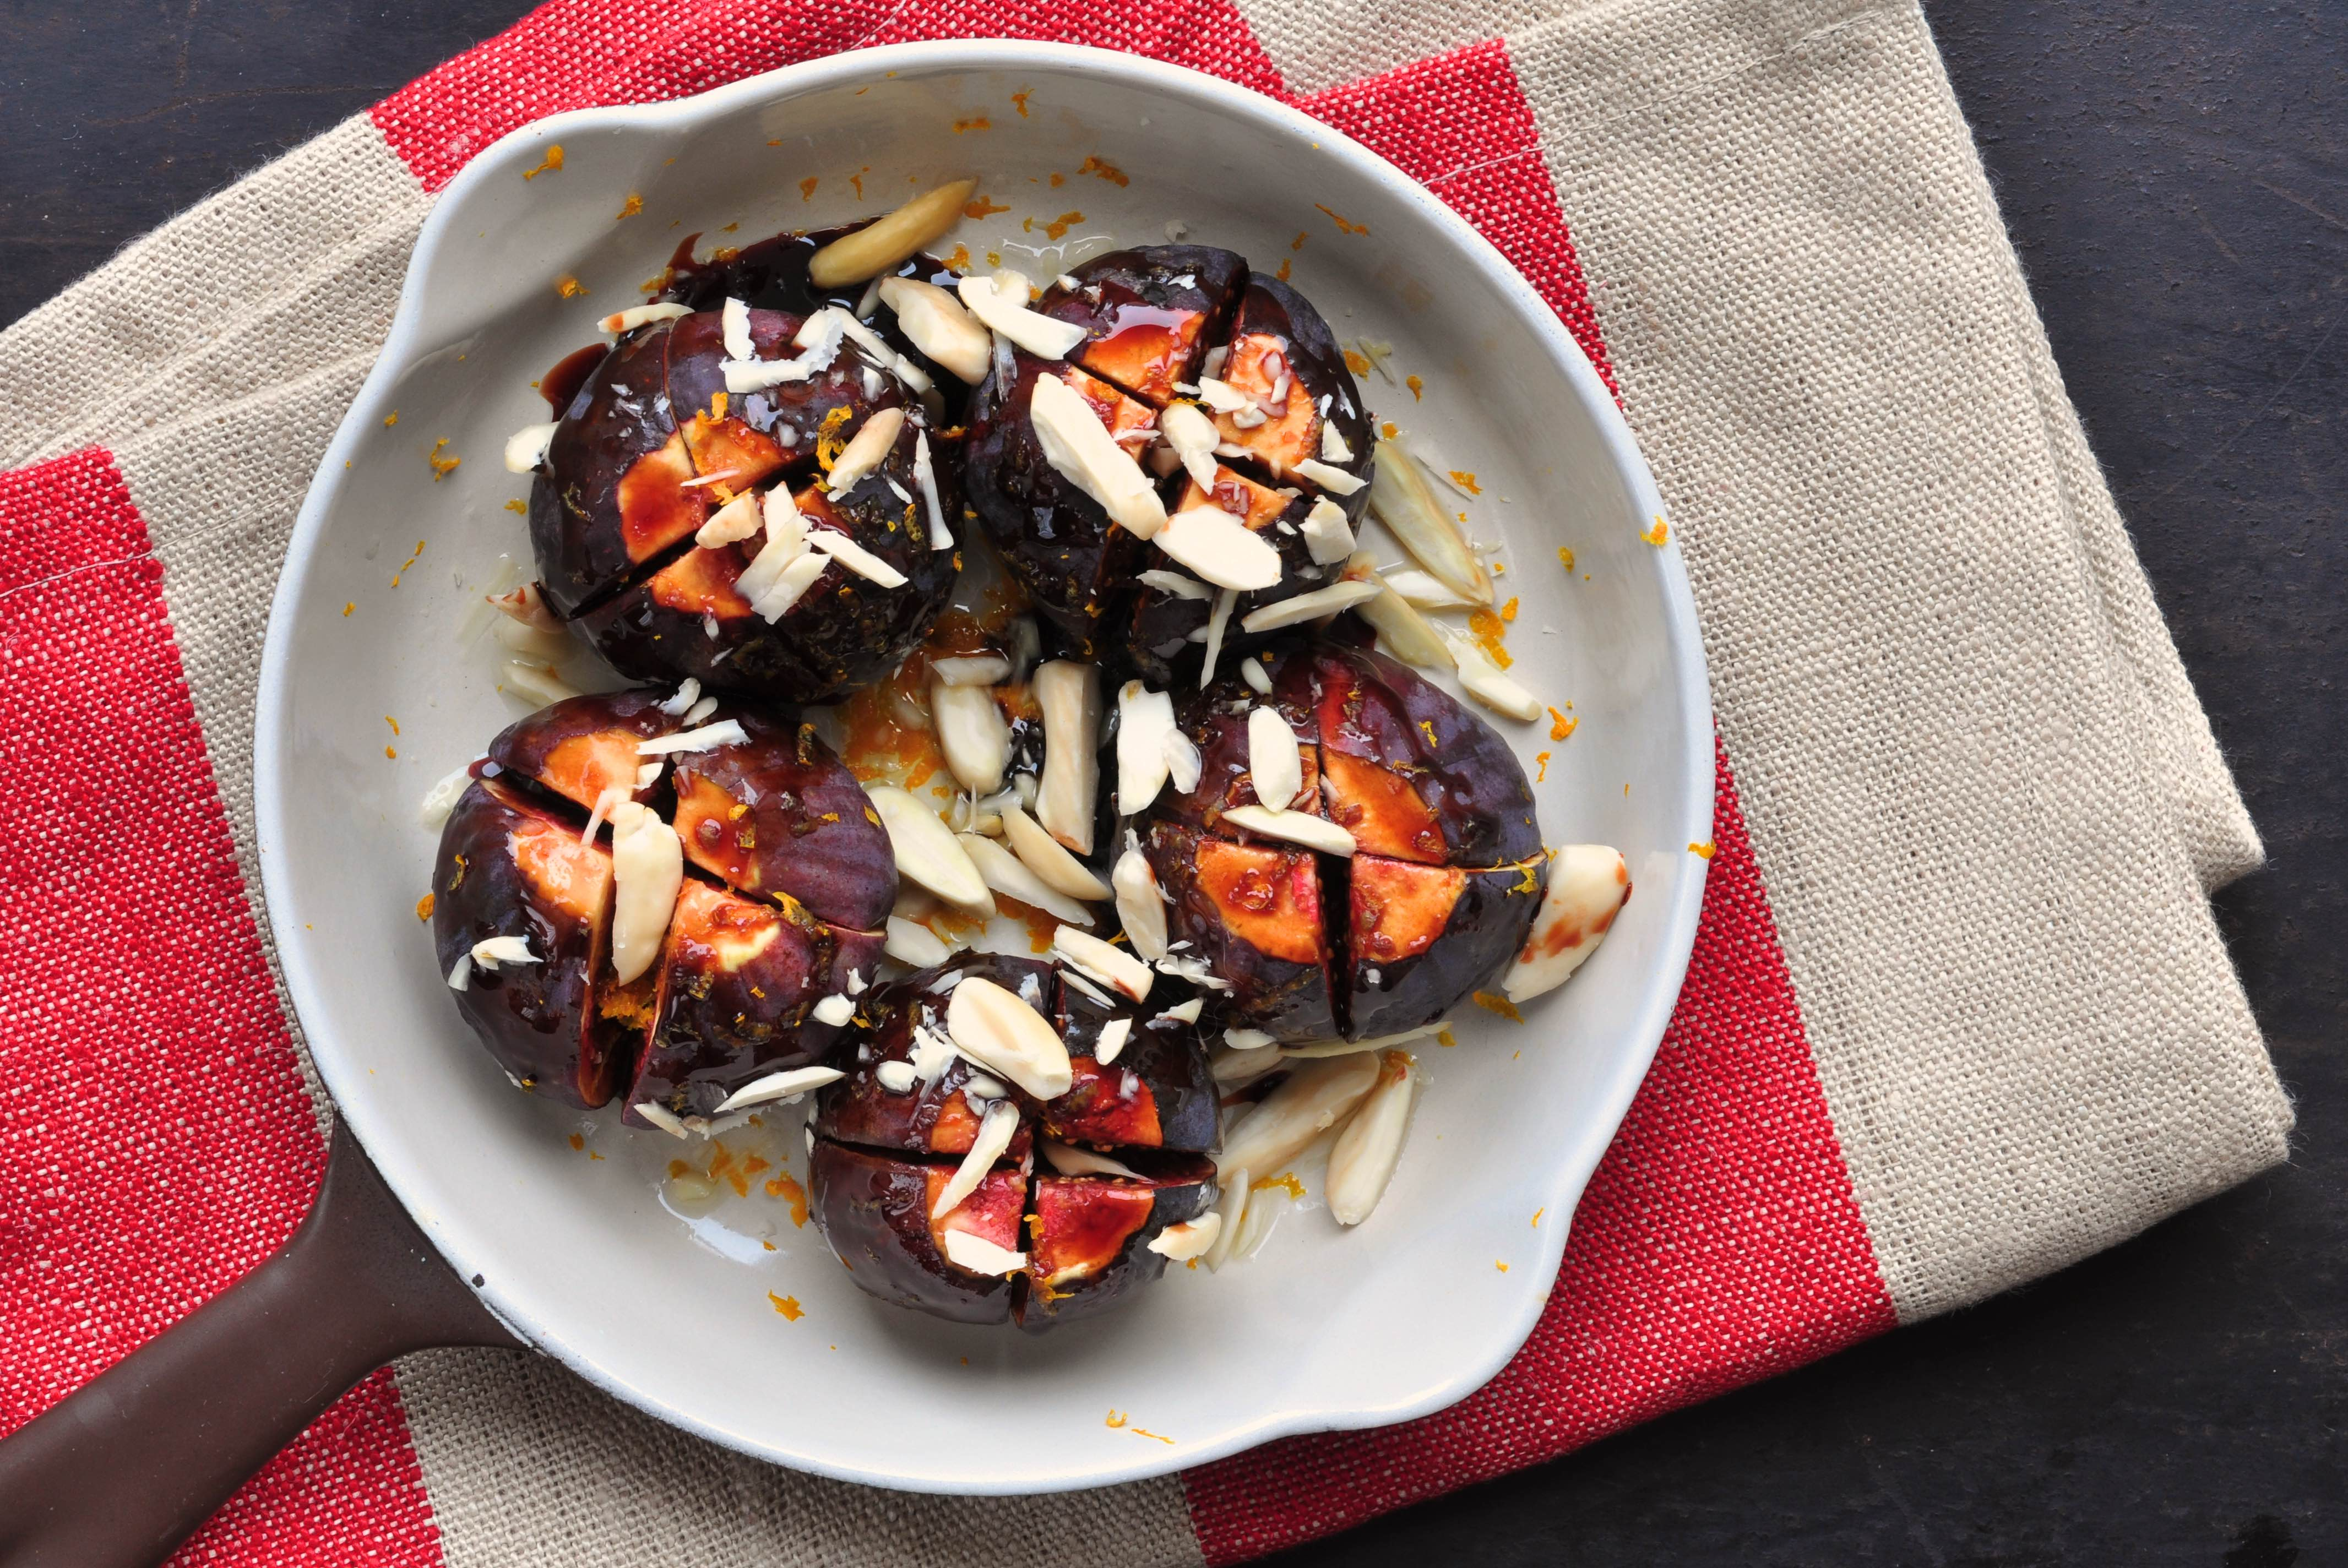 Ovenbaked_fresh_figs_with_almonds_and_orange_juice